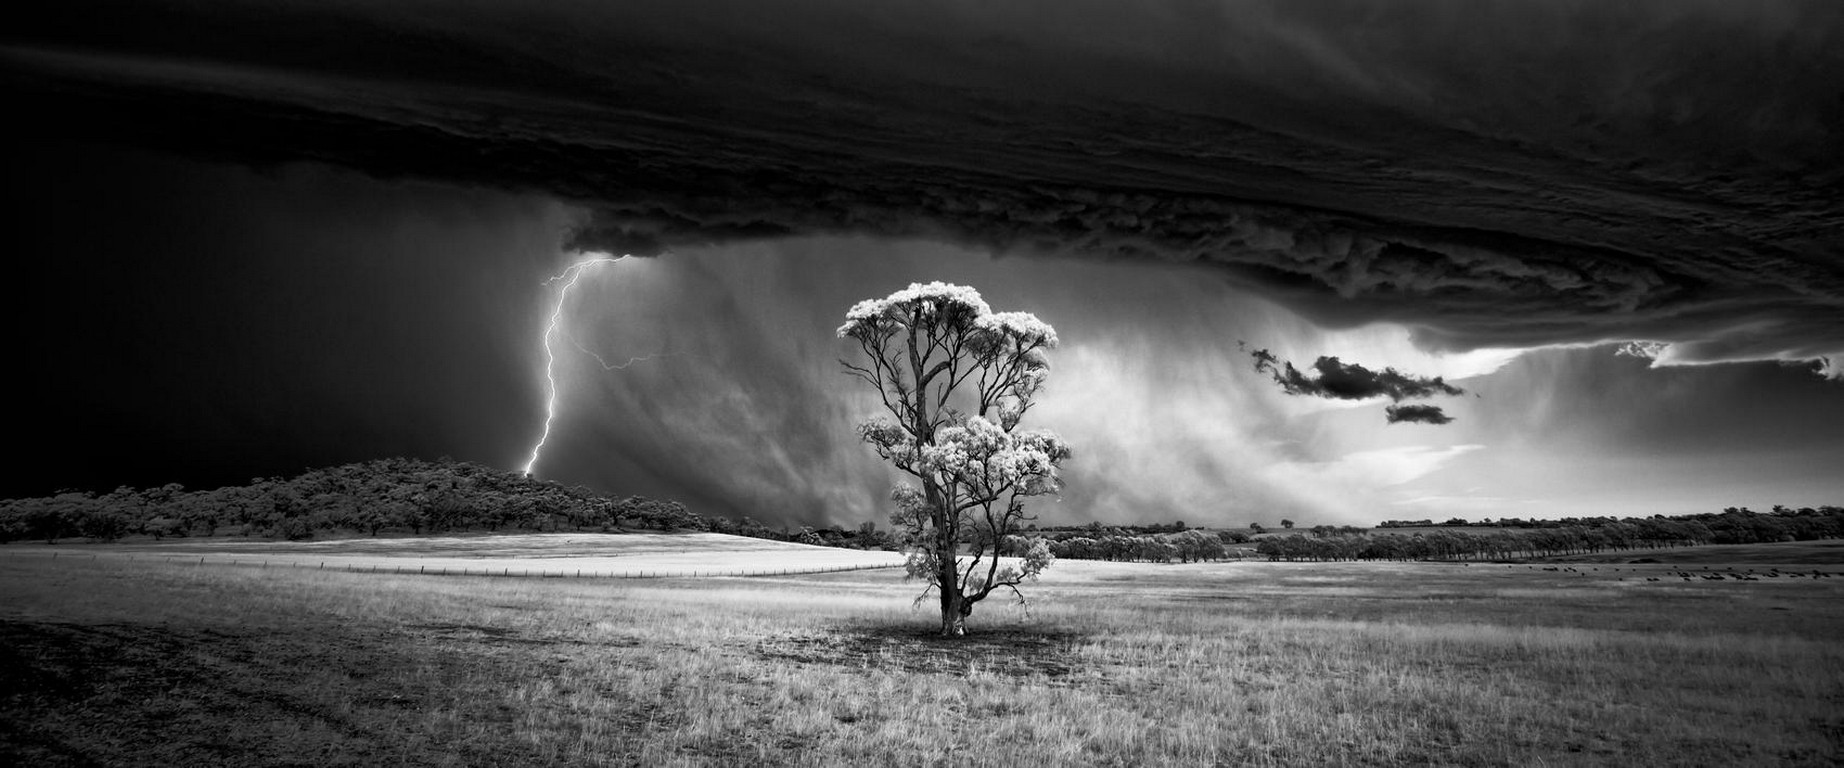 General 1844x768 nature landscape trees field storm lightning supercell (nature) clouds hills wind monochrome panoramas